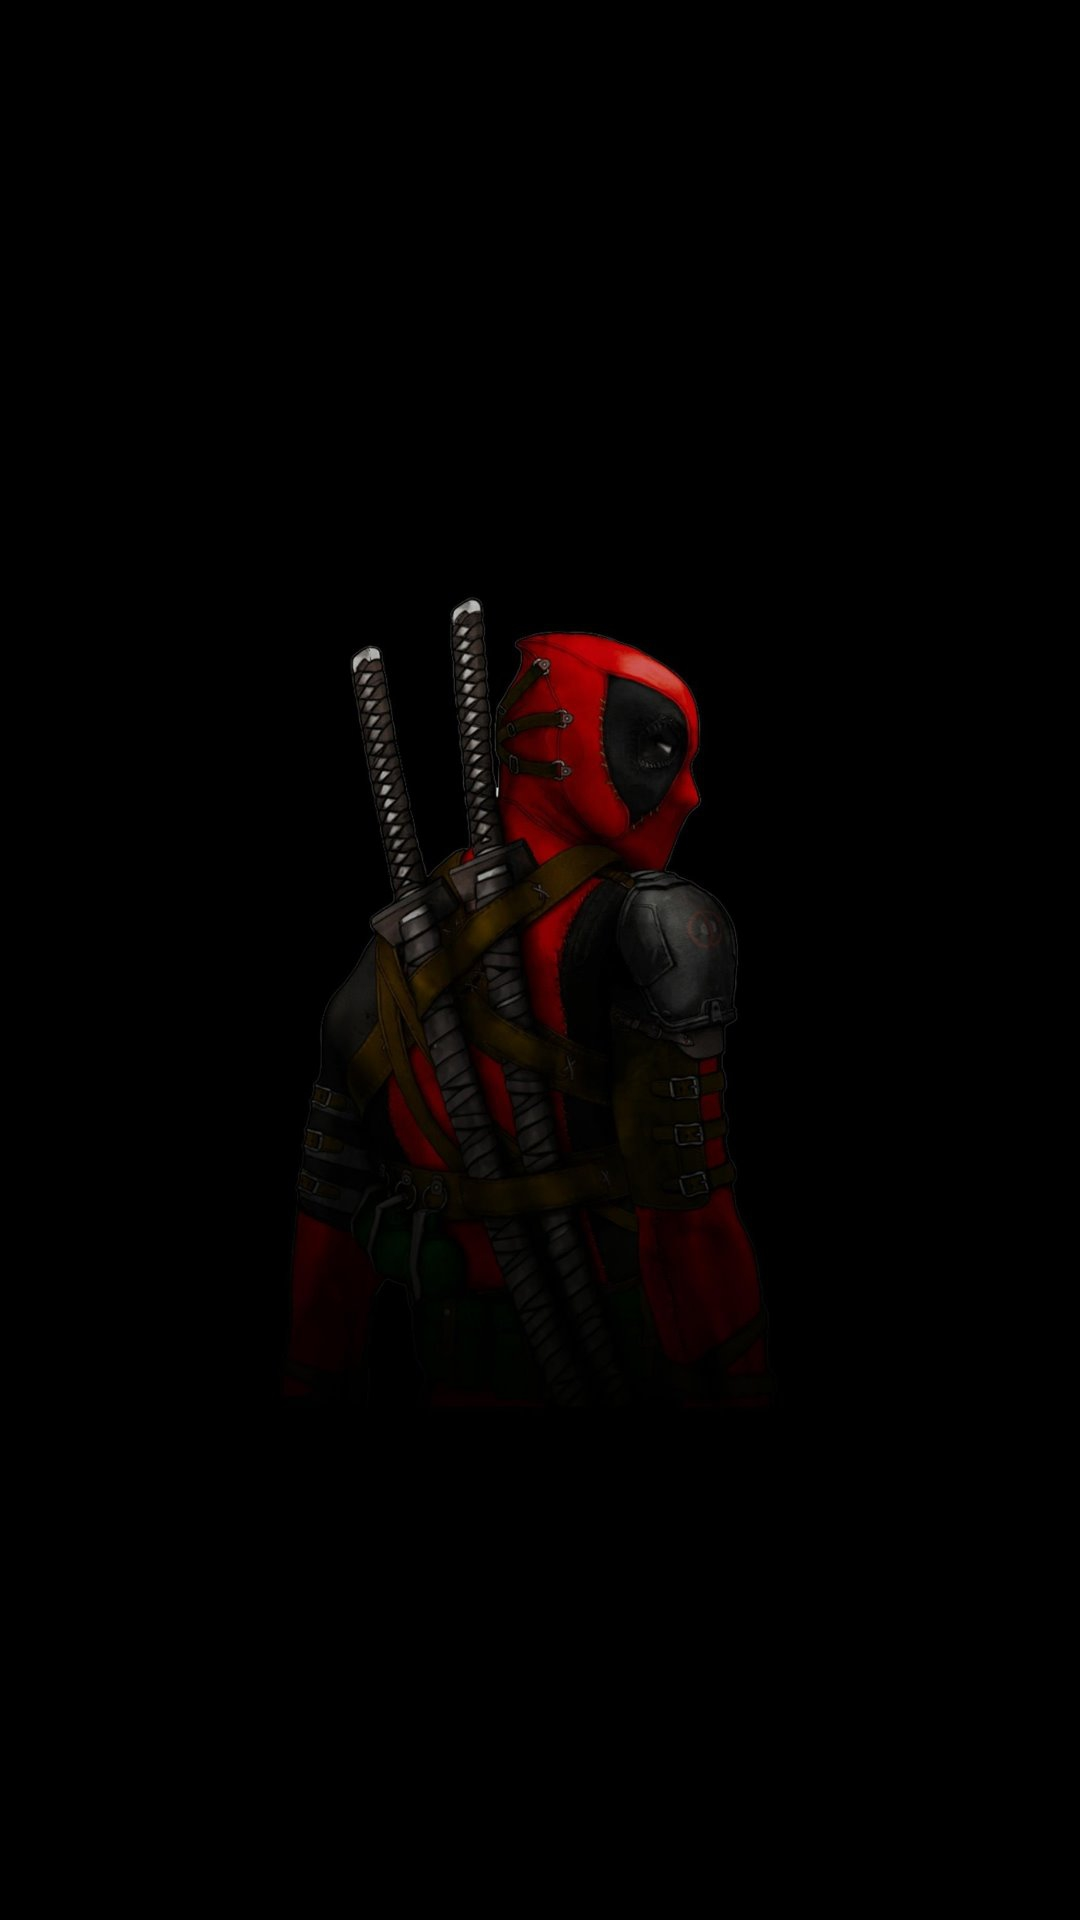 Cute Love Wallpaper For Phones Deadpool Amoled Iphone Wallpaper Iphone Wallpapers